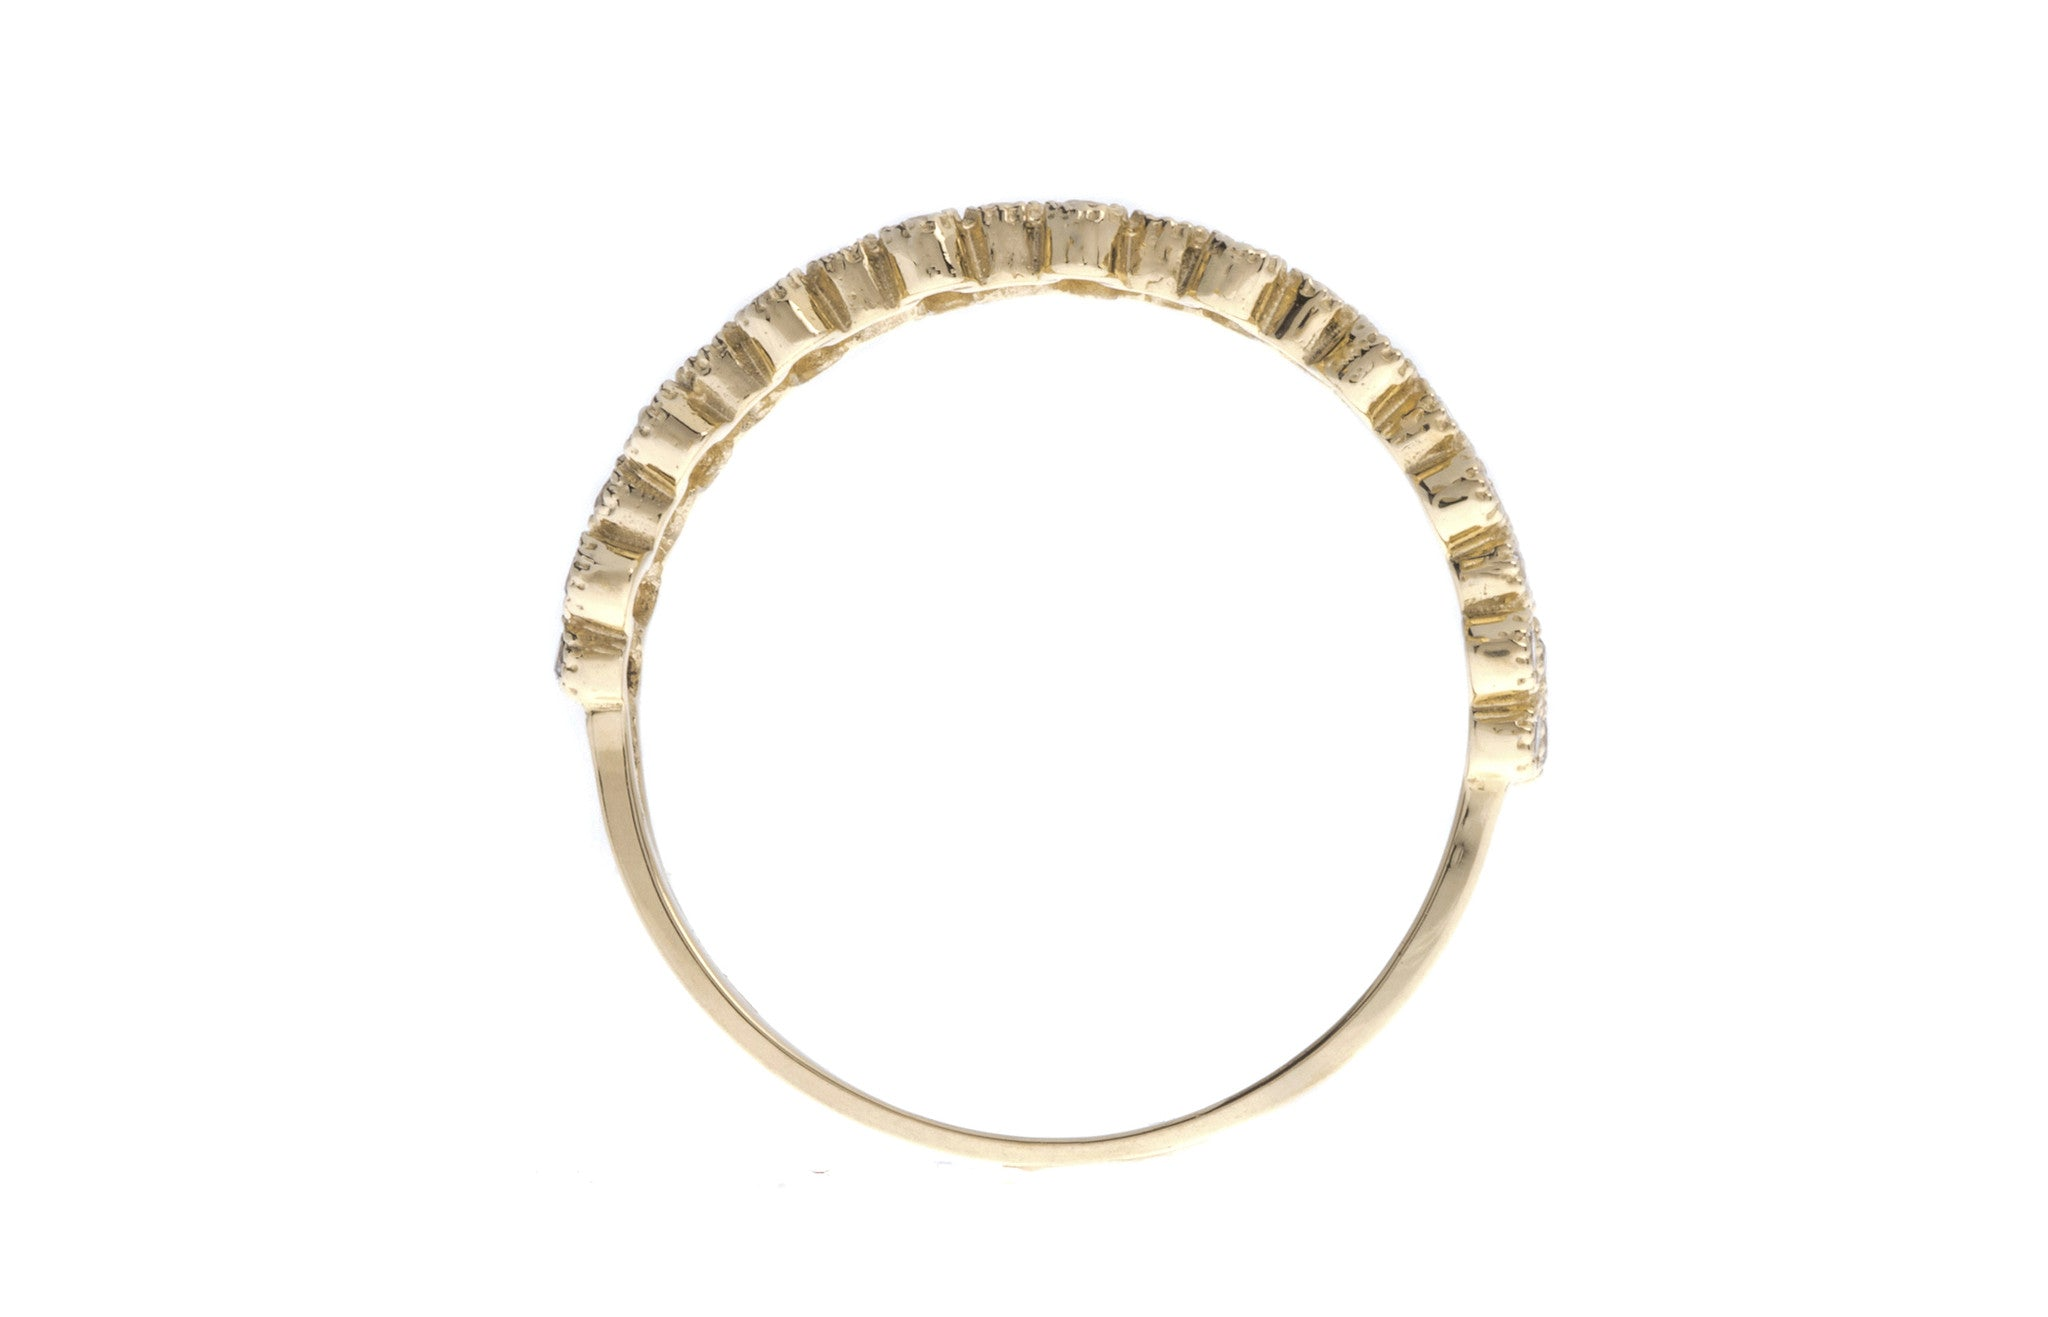 18ct Yellow Gold Cubic Zirconia Half Eternity Ring, Minar Jewellers - 6